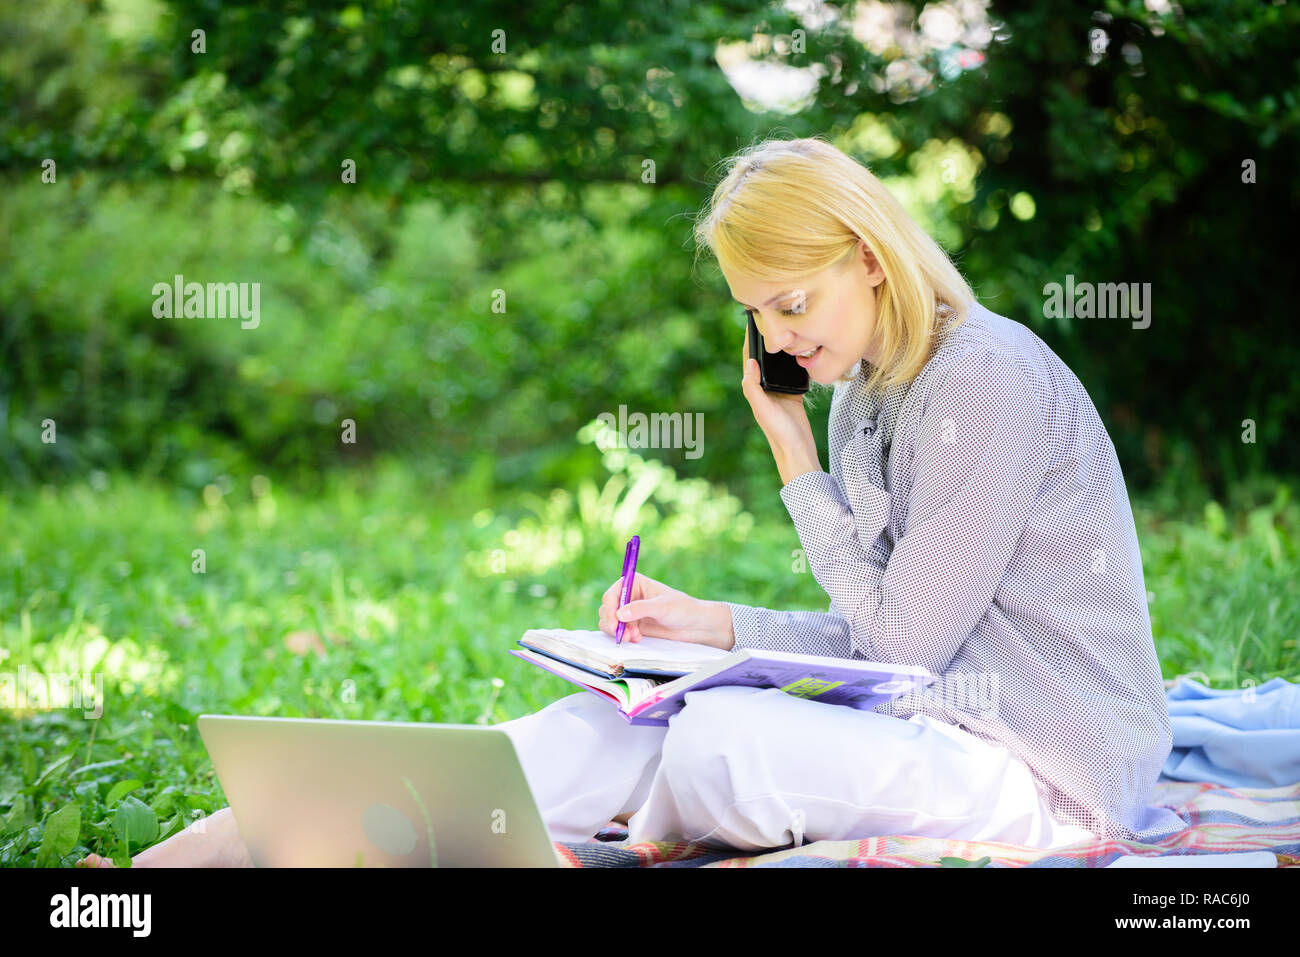 Modern technology give more opportunities to realize your potential. Woman with laptop and smartphone working outdoors. Girl use modern technology for business. Use opportunity digital technology. - Stock Image